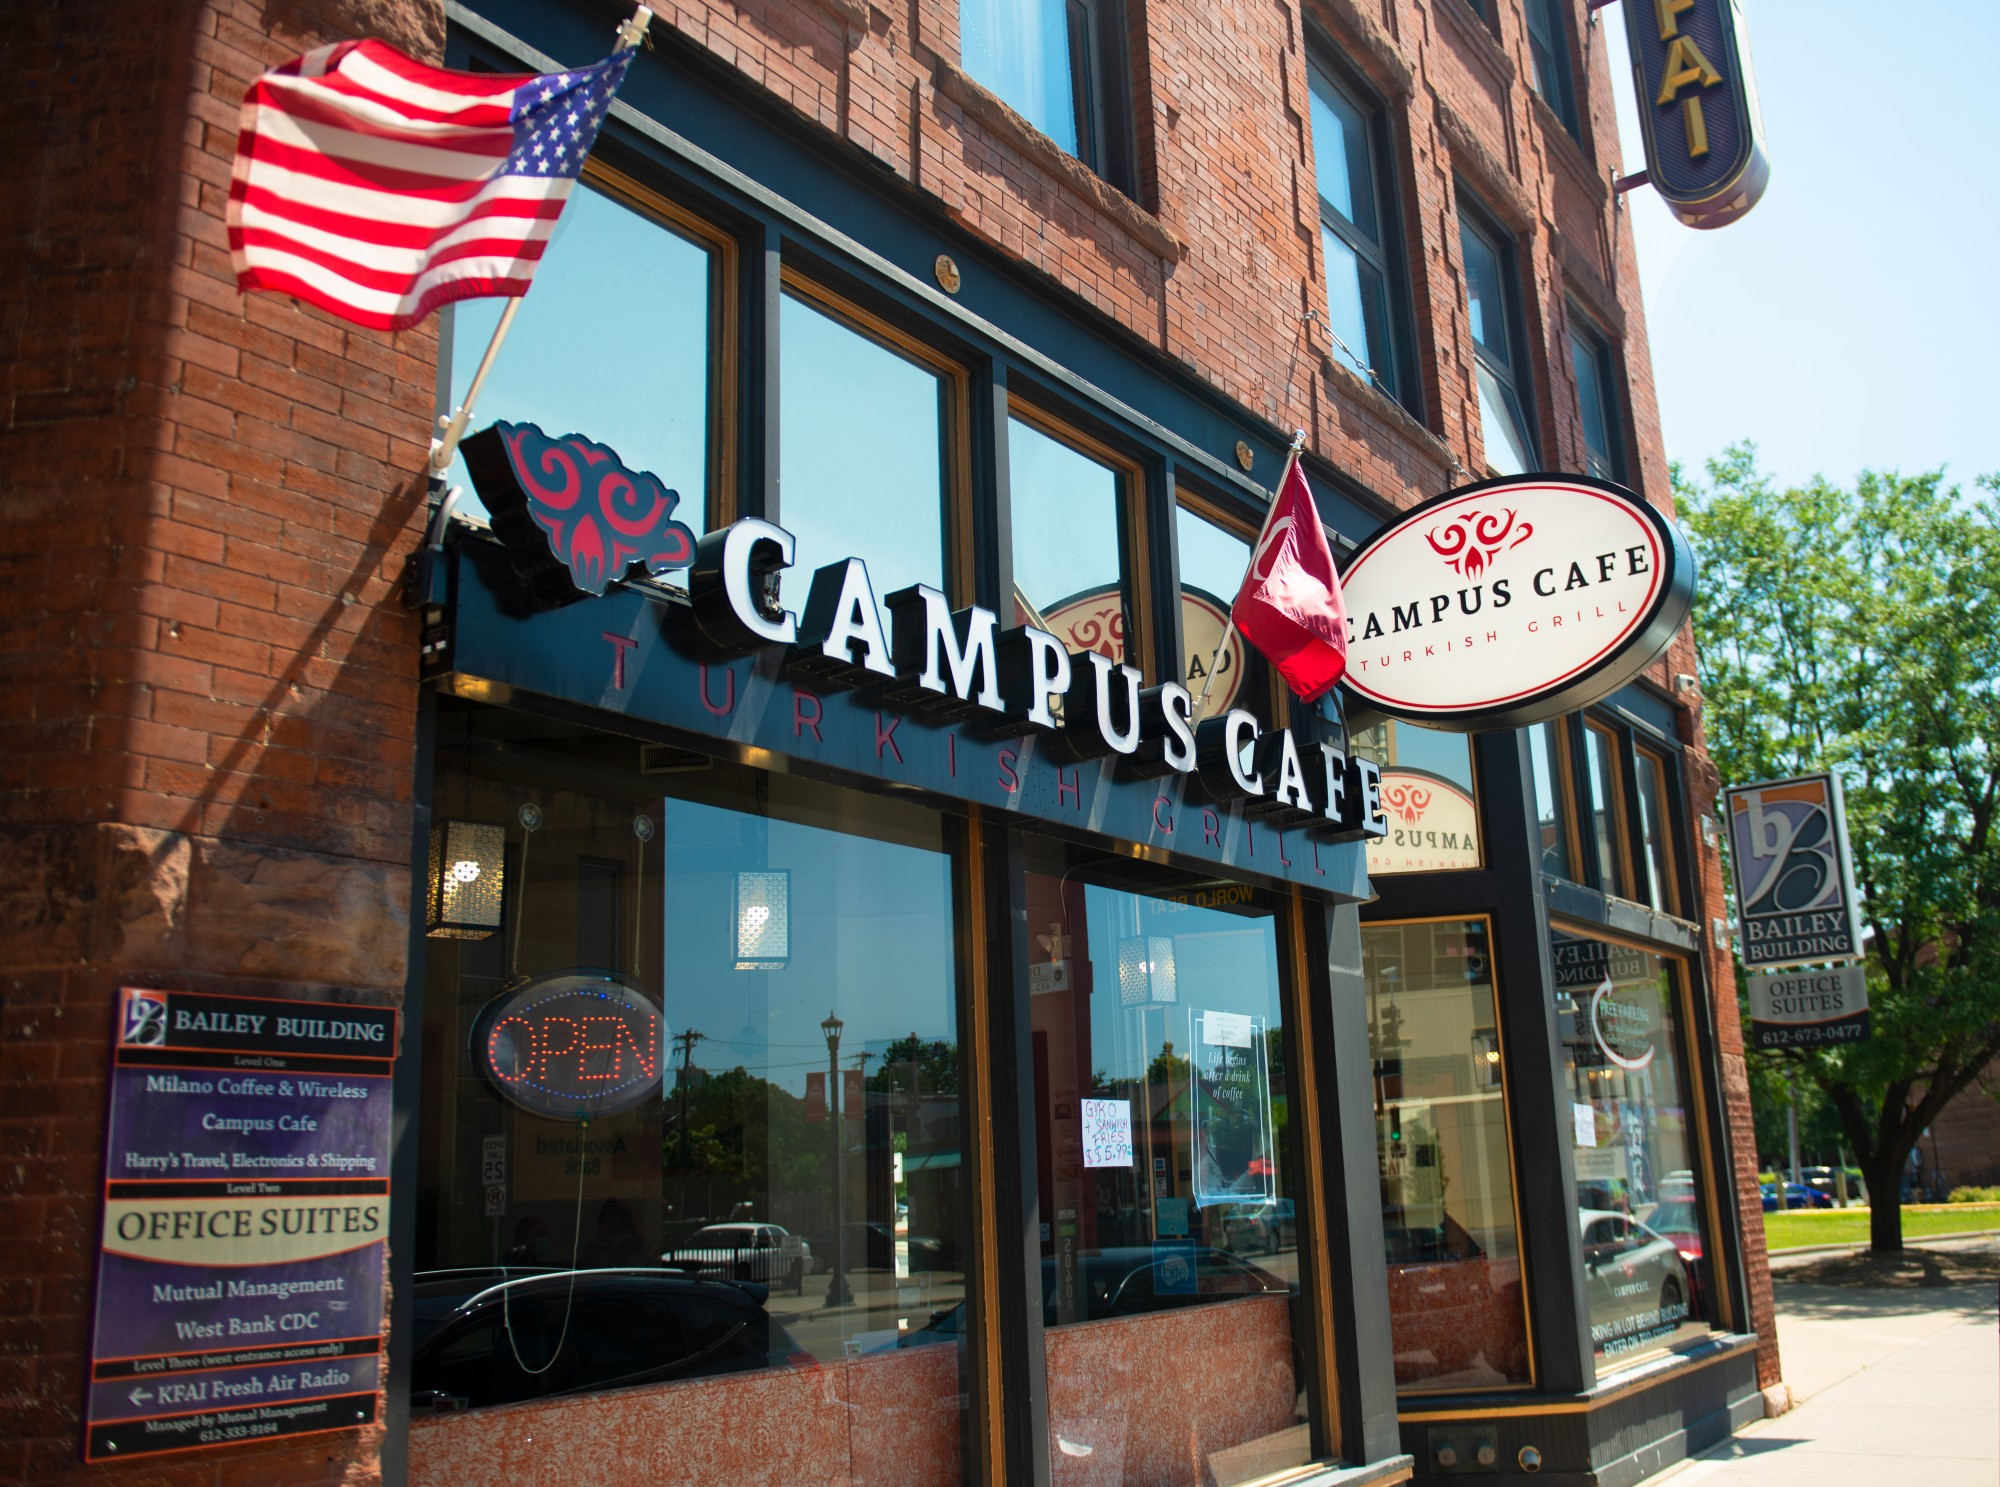 The Campus Cafe Turkish Grill in the Cedar-Riverside neighborhood of Minneapolis on Wednesday, June 17.